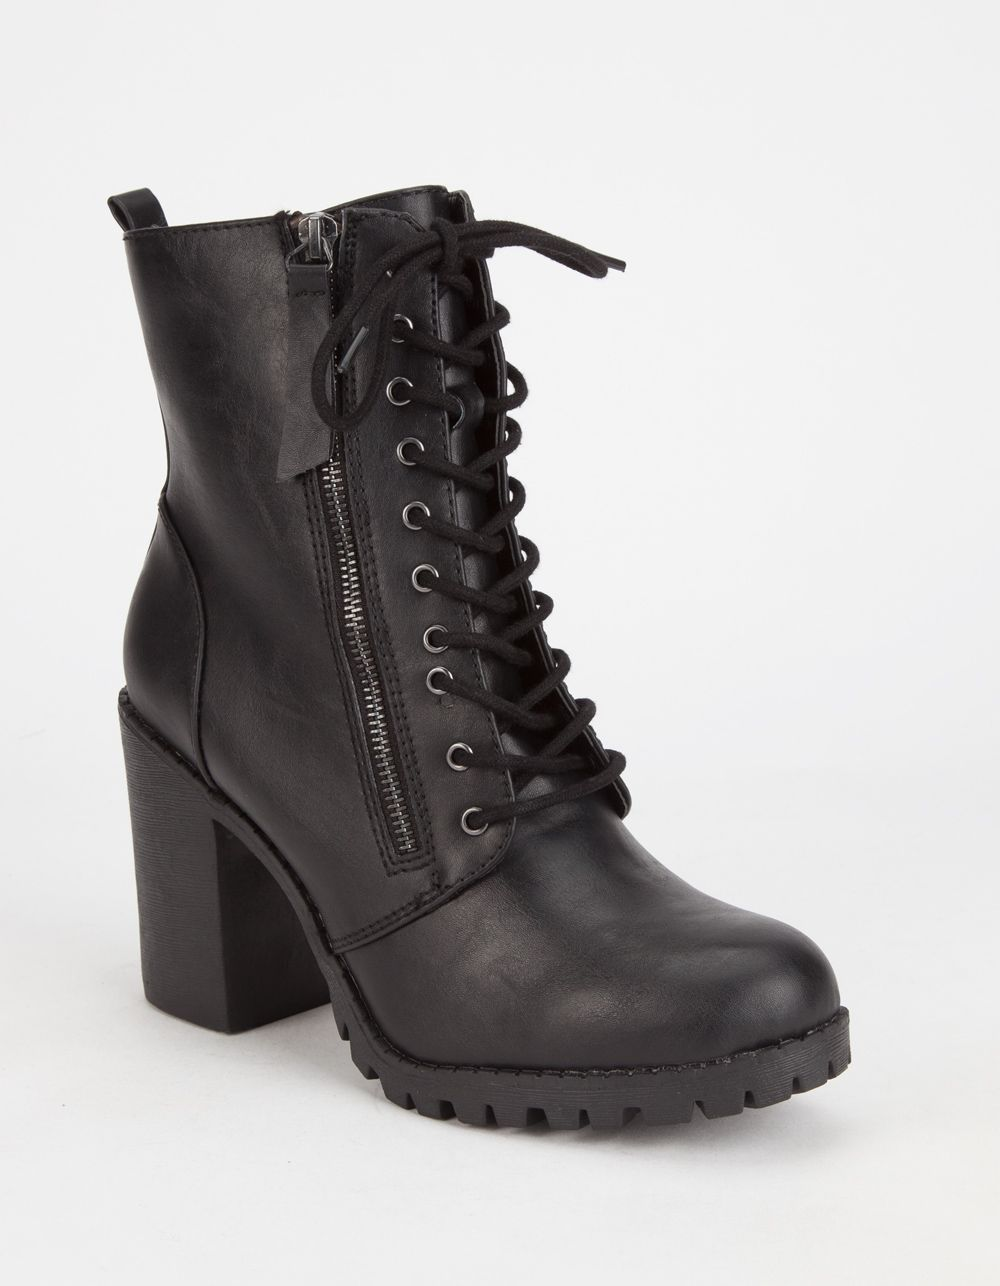 b2a5c488758 SODA Malia Womens Combat Boots 272650412 | Boots & Booties | Shoes ...